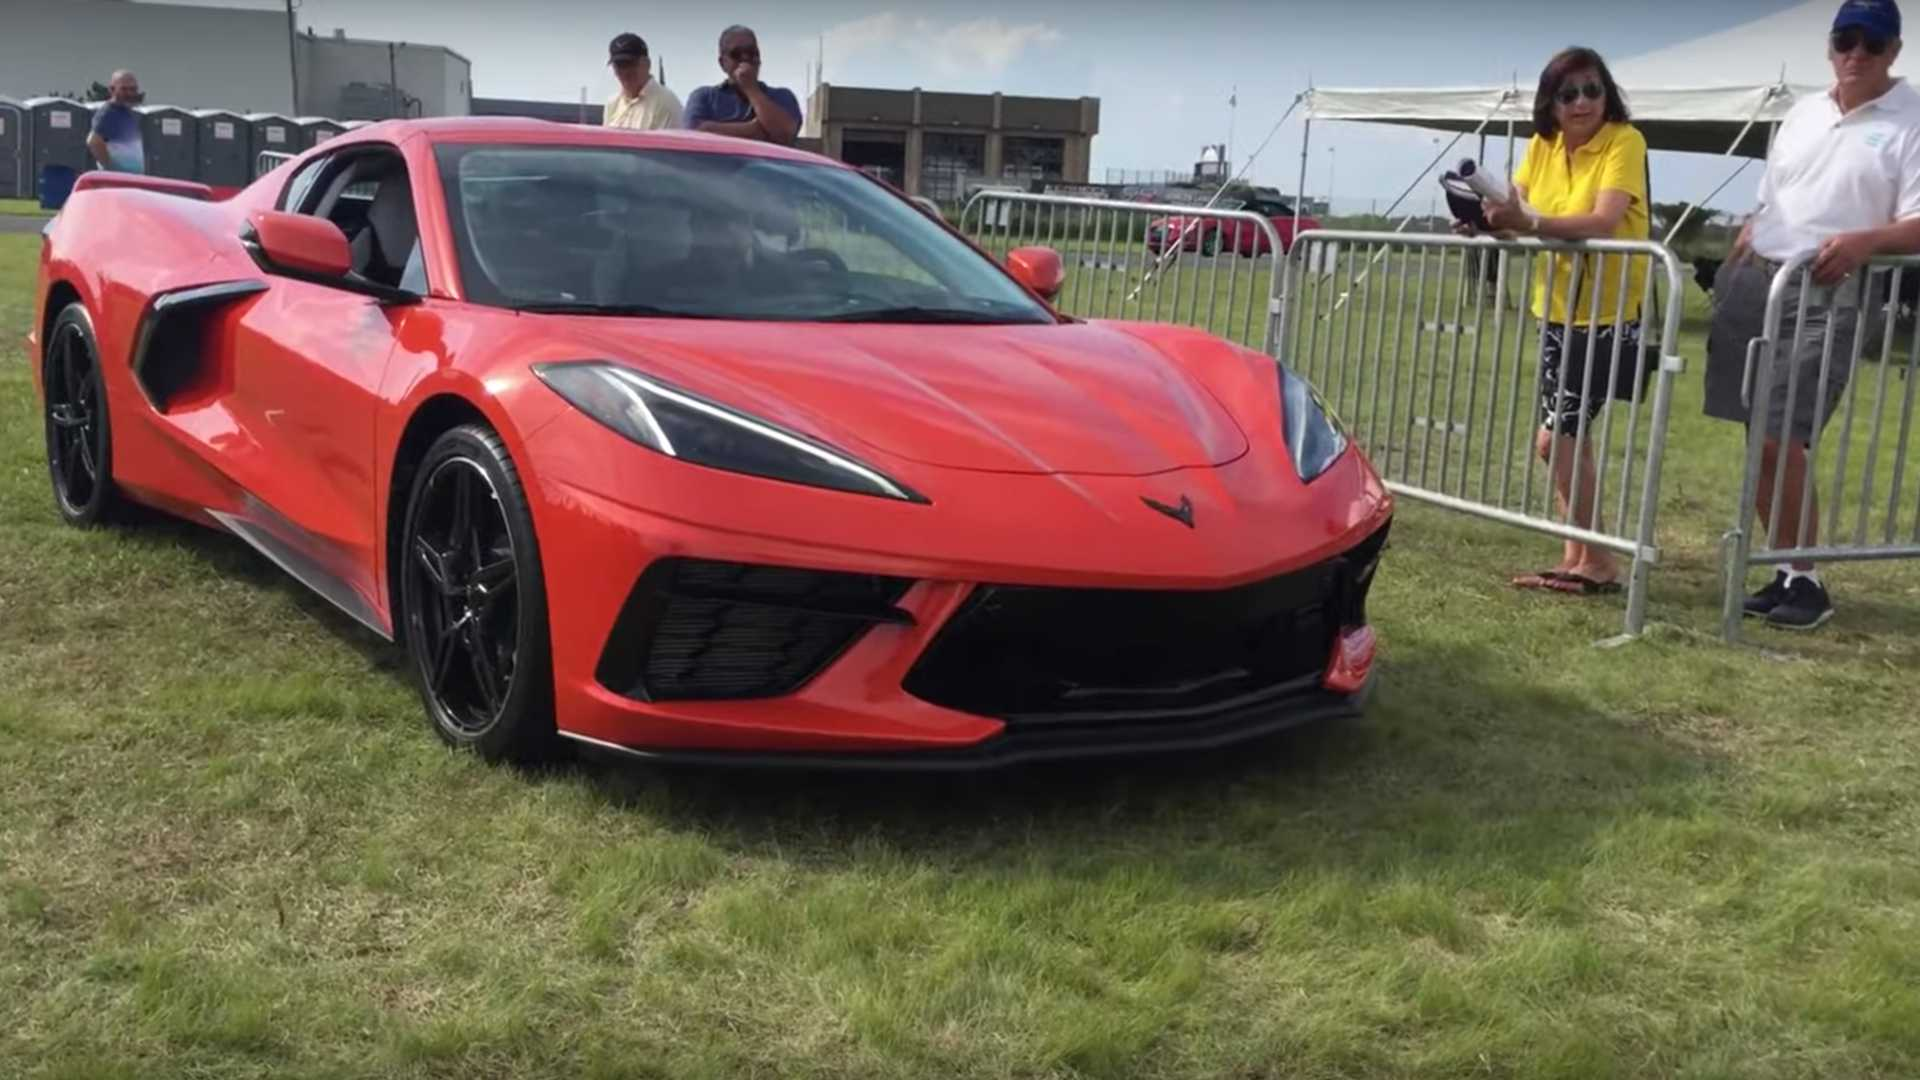 2020 Corvette Stingray Front Lift System Put To Good Use